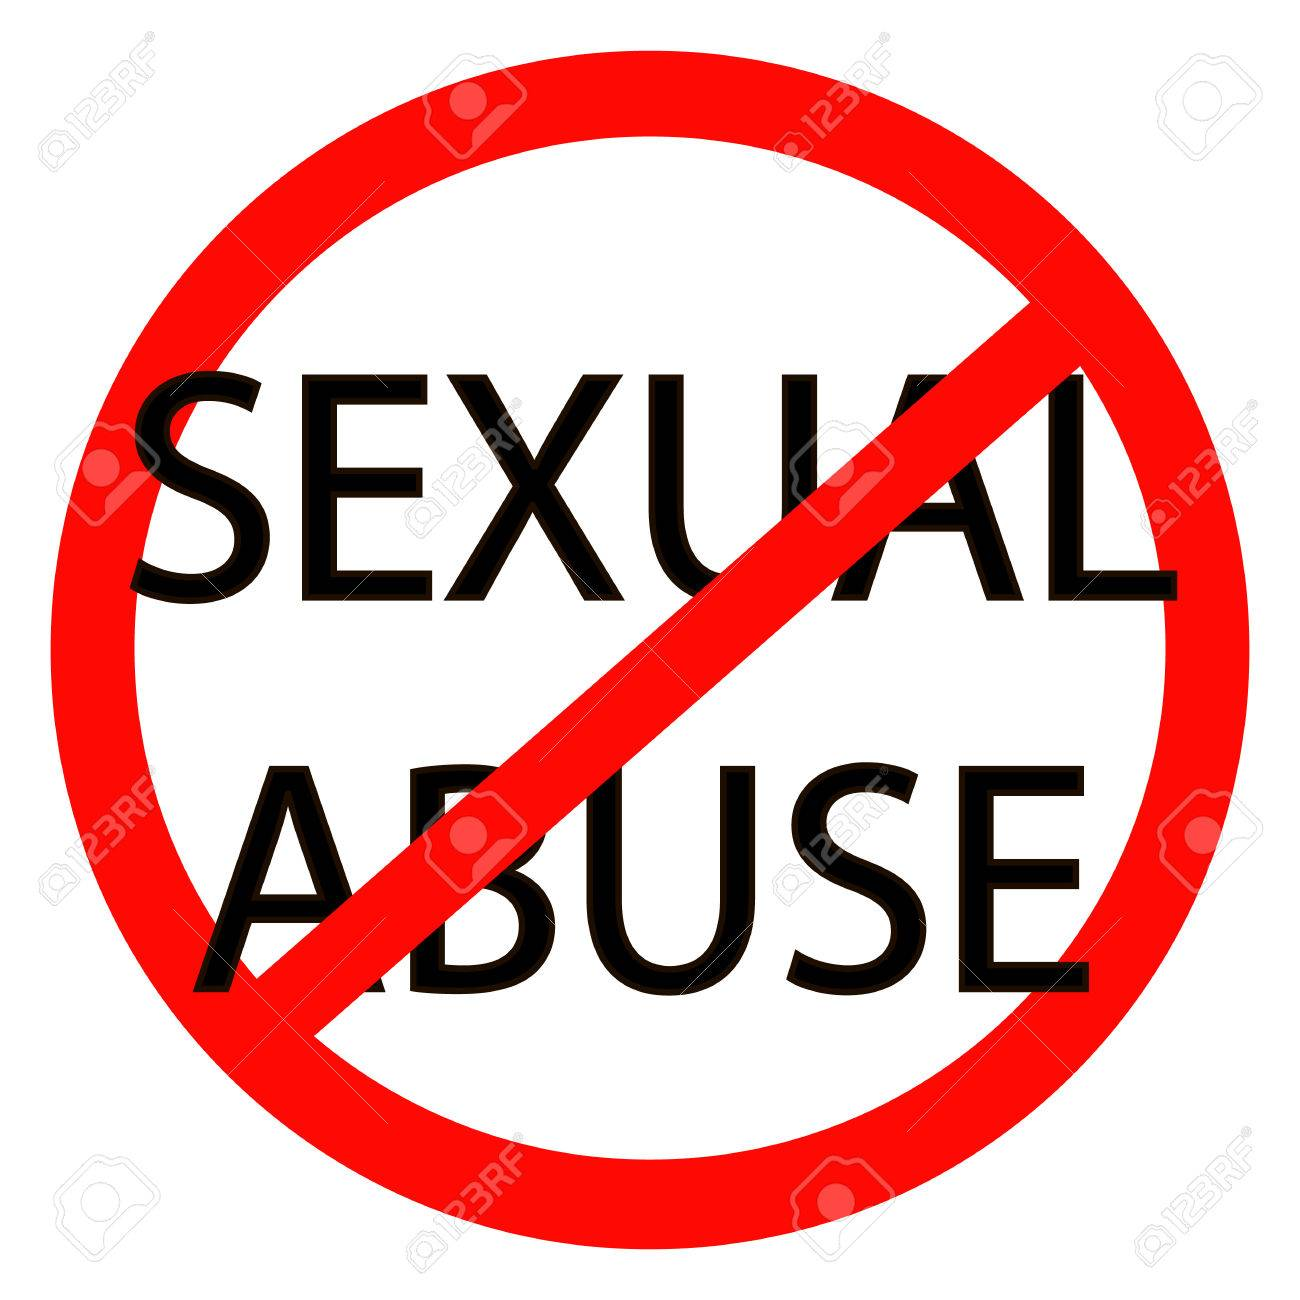 stop sexual abuse vector red stop sign royalty free cliparts rh 123rf com Abuse Clip Art Black and White Physical Abuse Clip Art